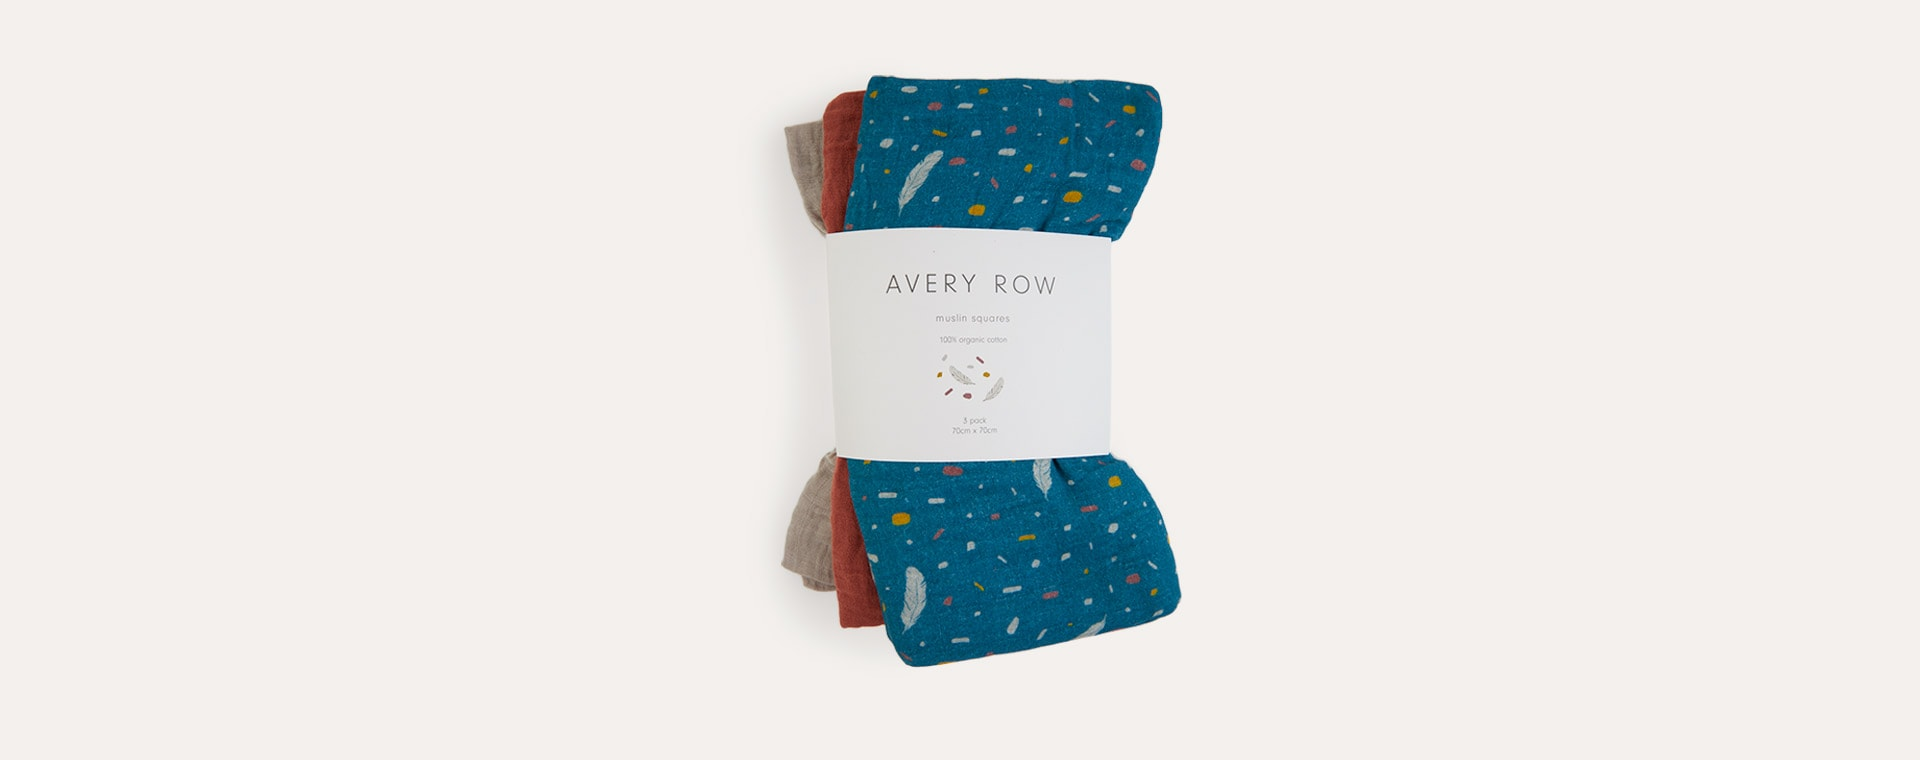 Feathers Avery Row Muslin Squares Pack of 3